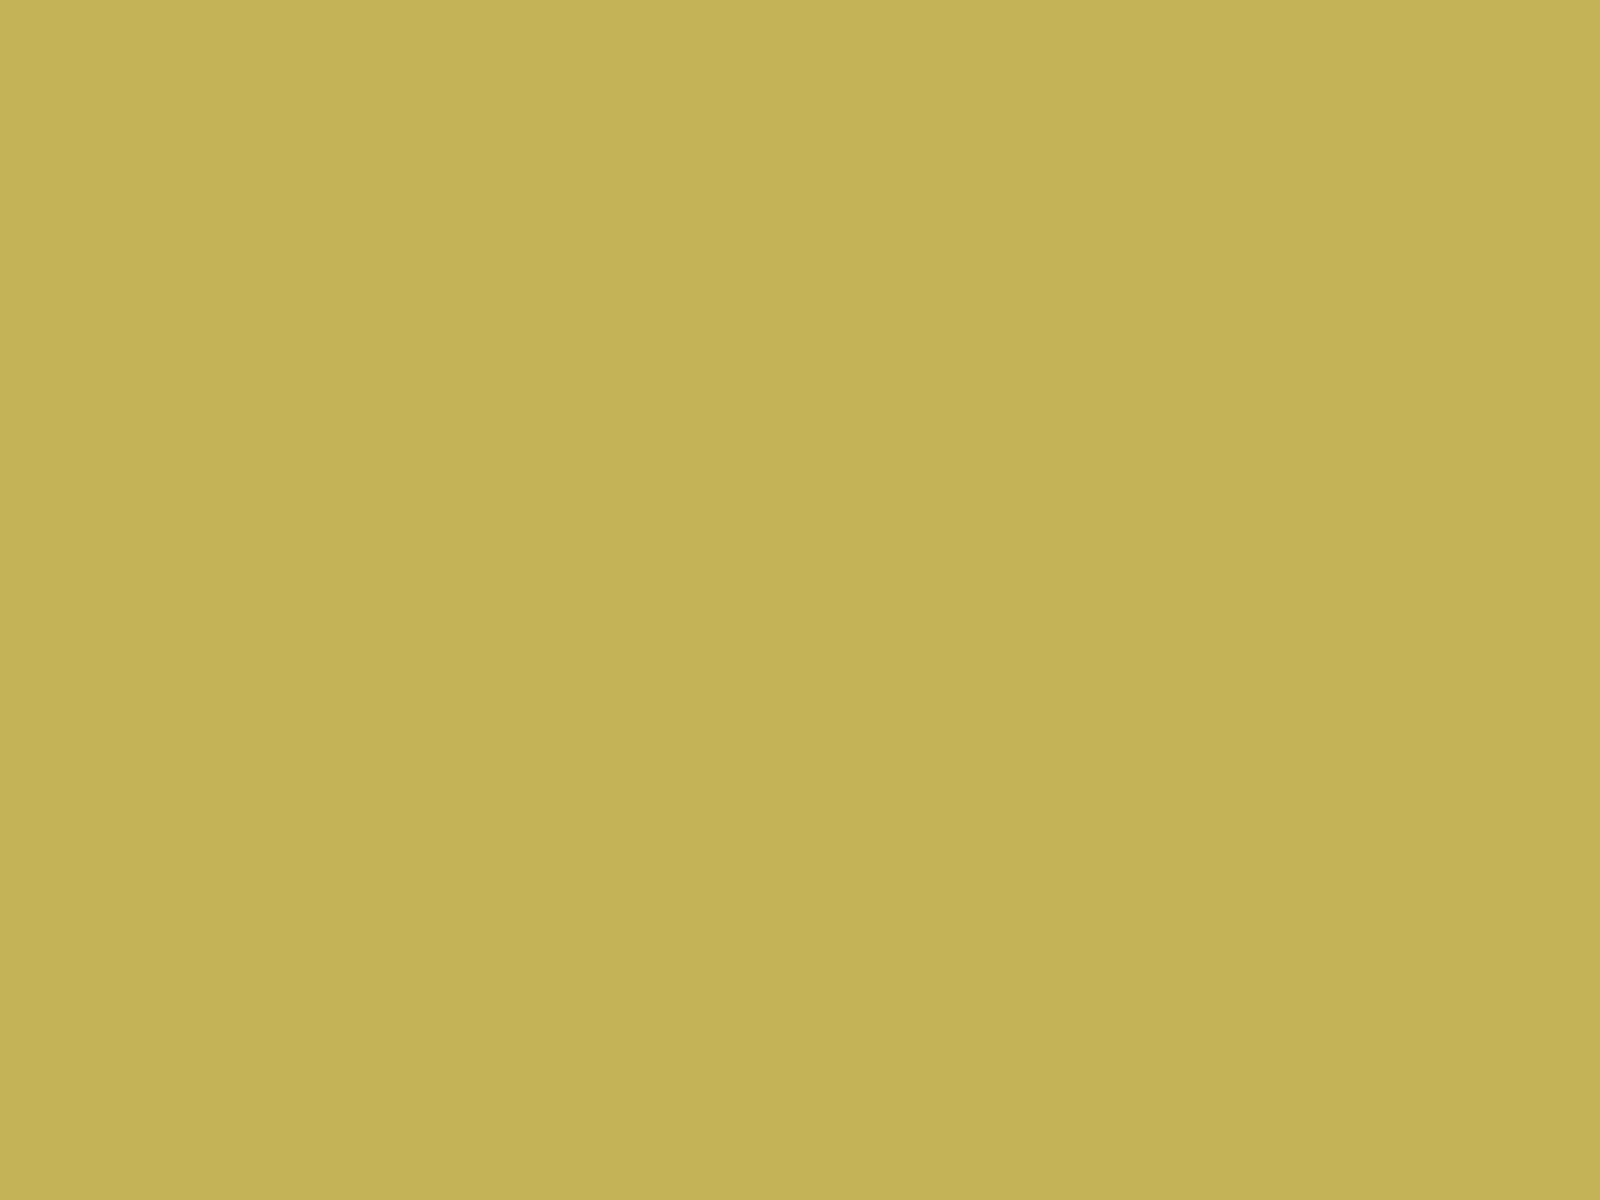 1600x1200 Vegas Gold Solid Color Background